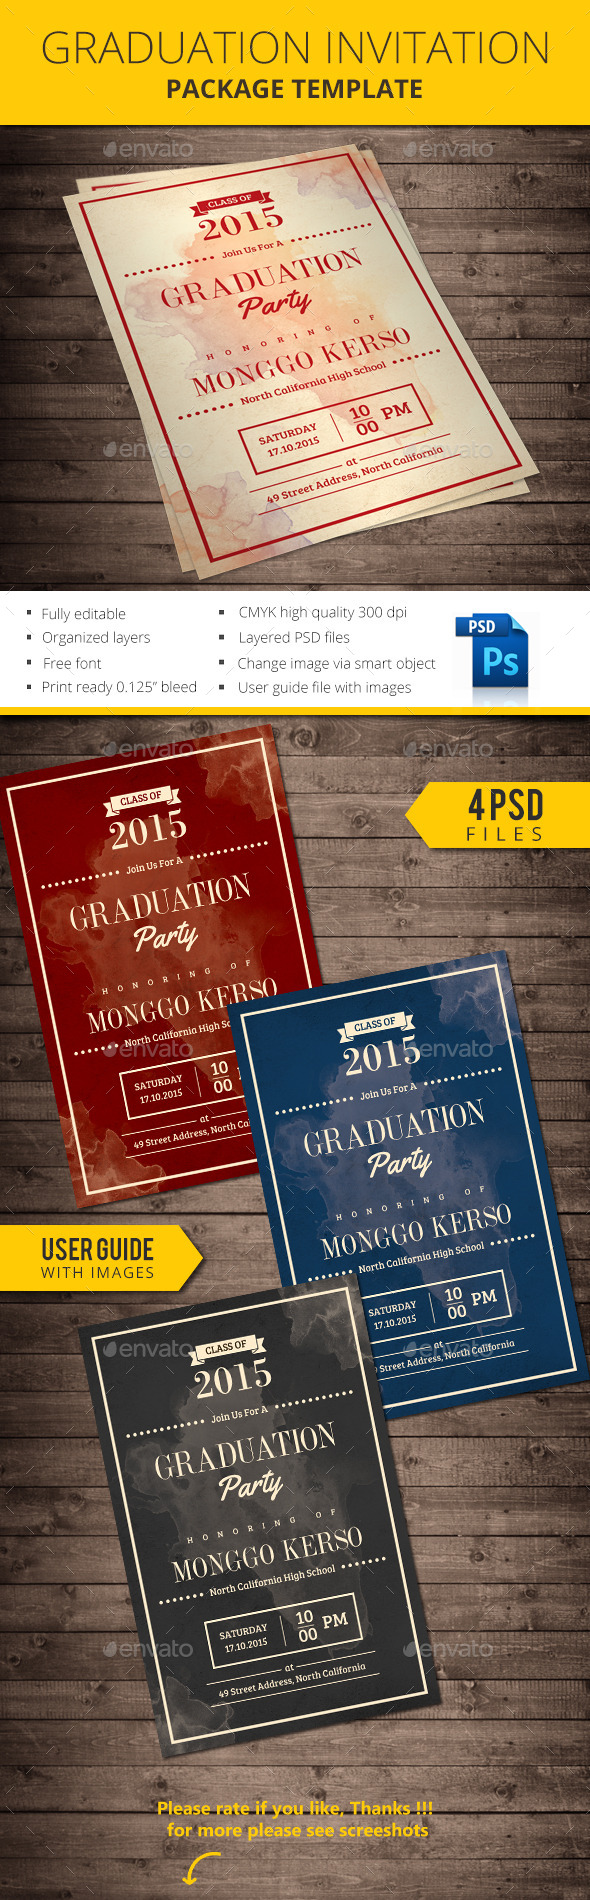 Graduation invitation by monggokerso | GraphicRiver